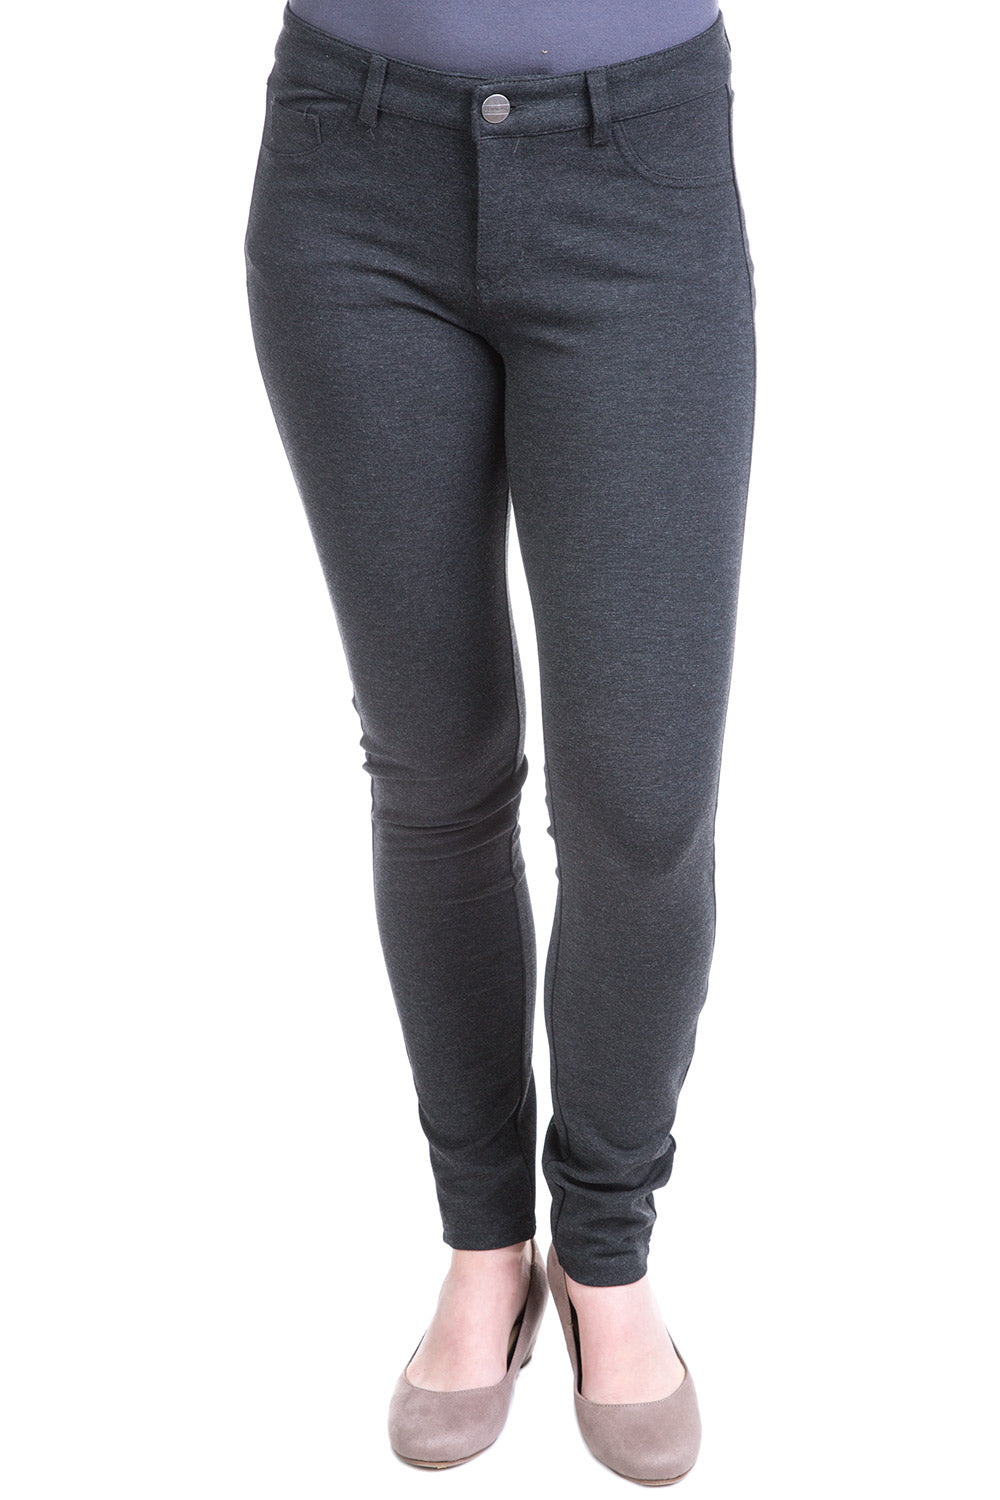 Type 2 Stay Classy Pants In Charcoal